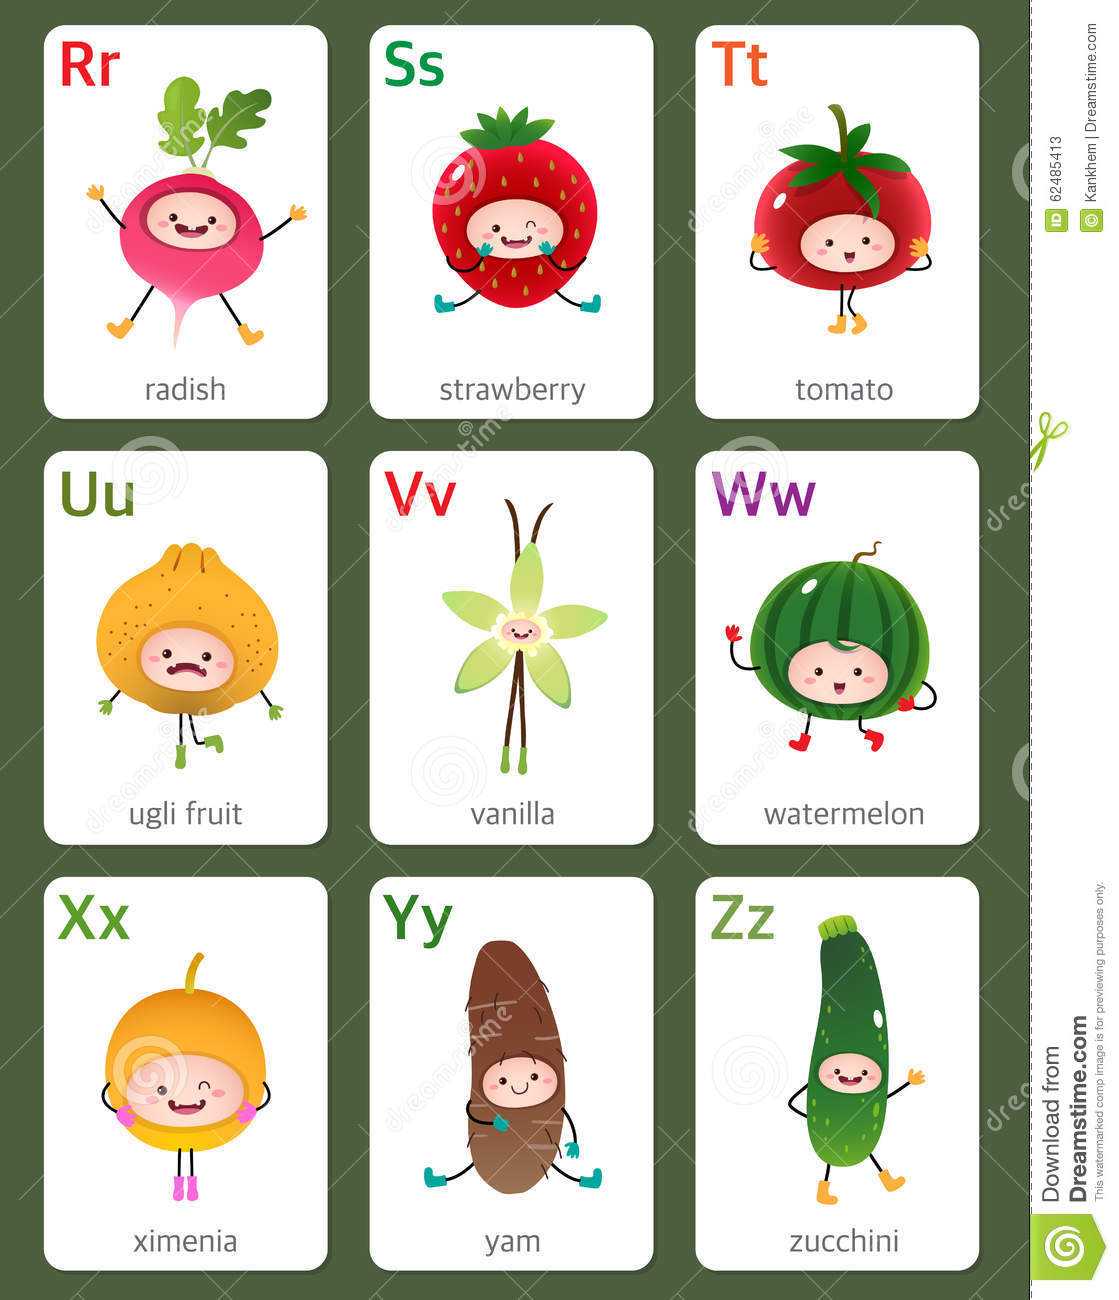 Printable Flashcard English Alphabet From R To Z With